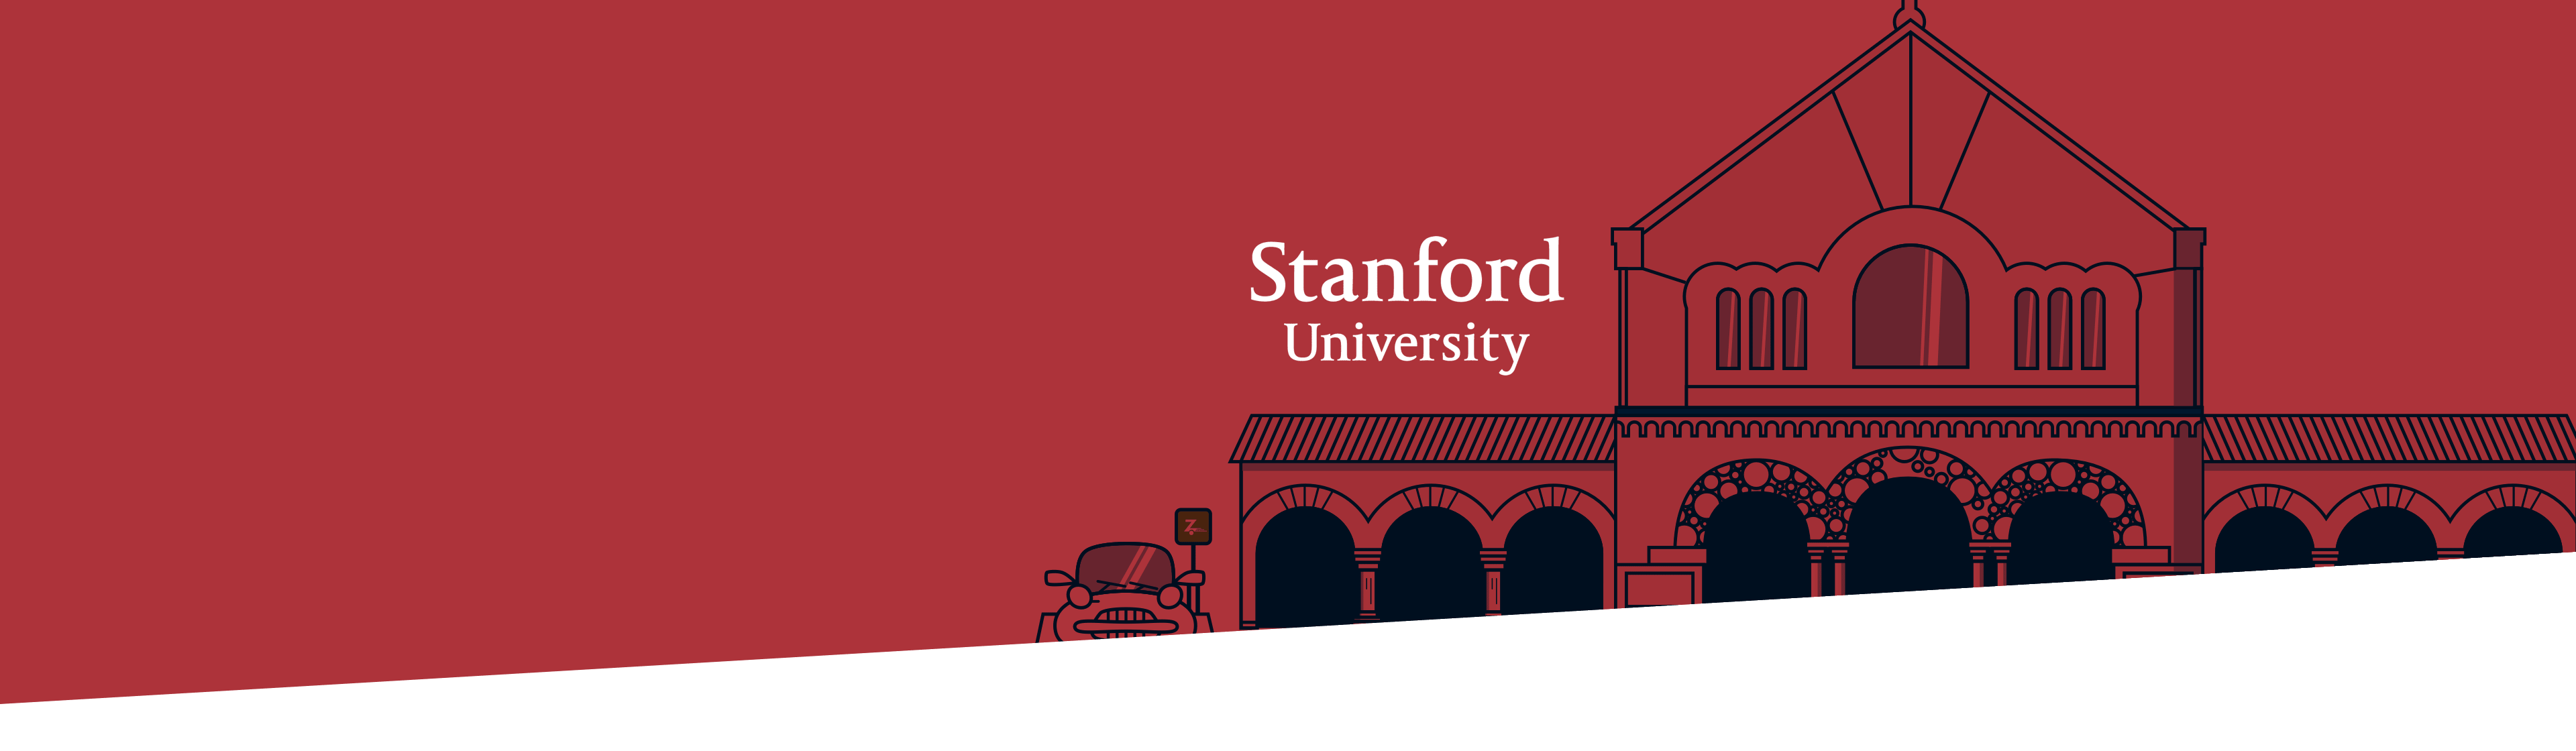 Stanford University building and logo